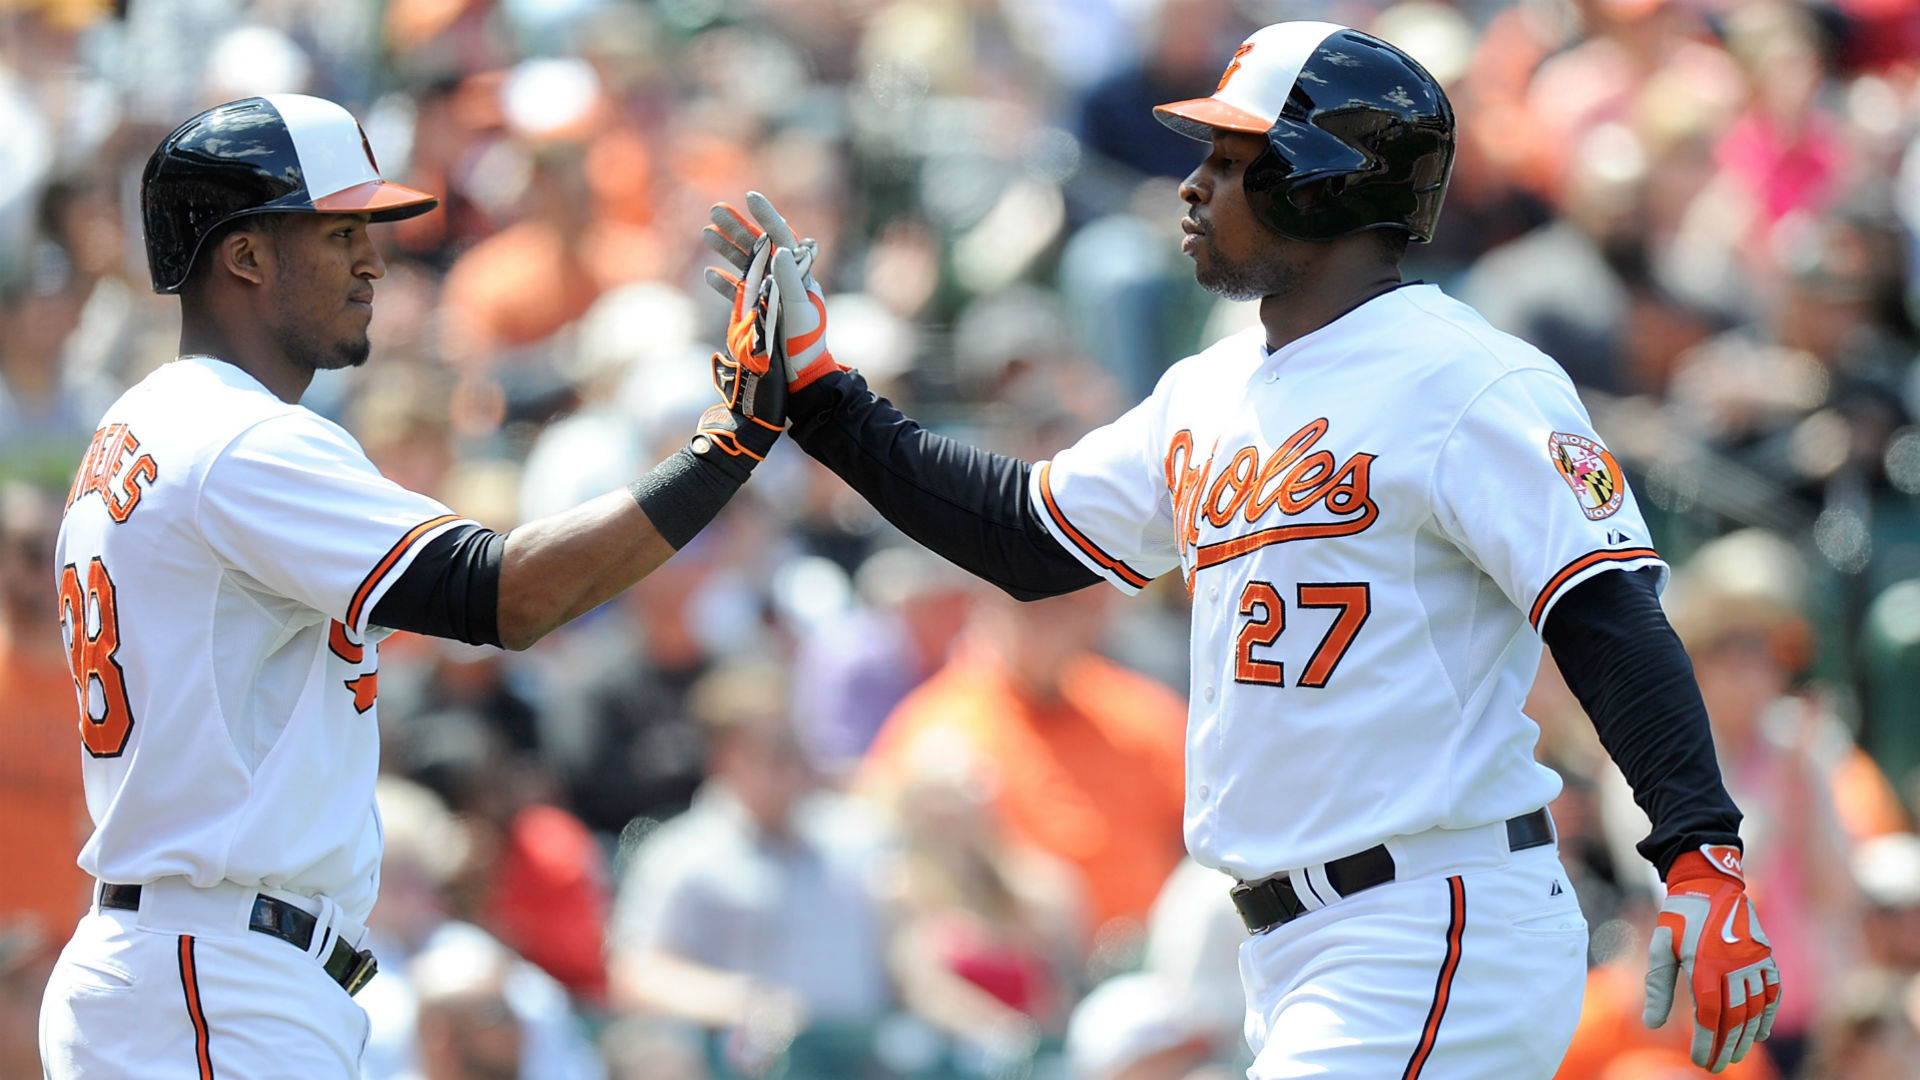 MLB Nightly 9: Orioles explode for 18 runs in win against Red Sox